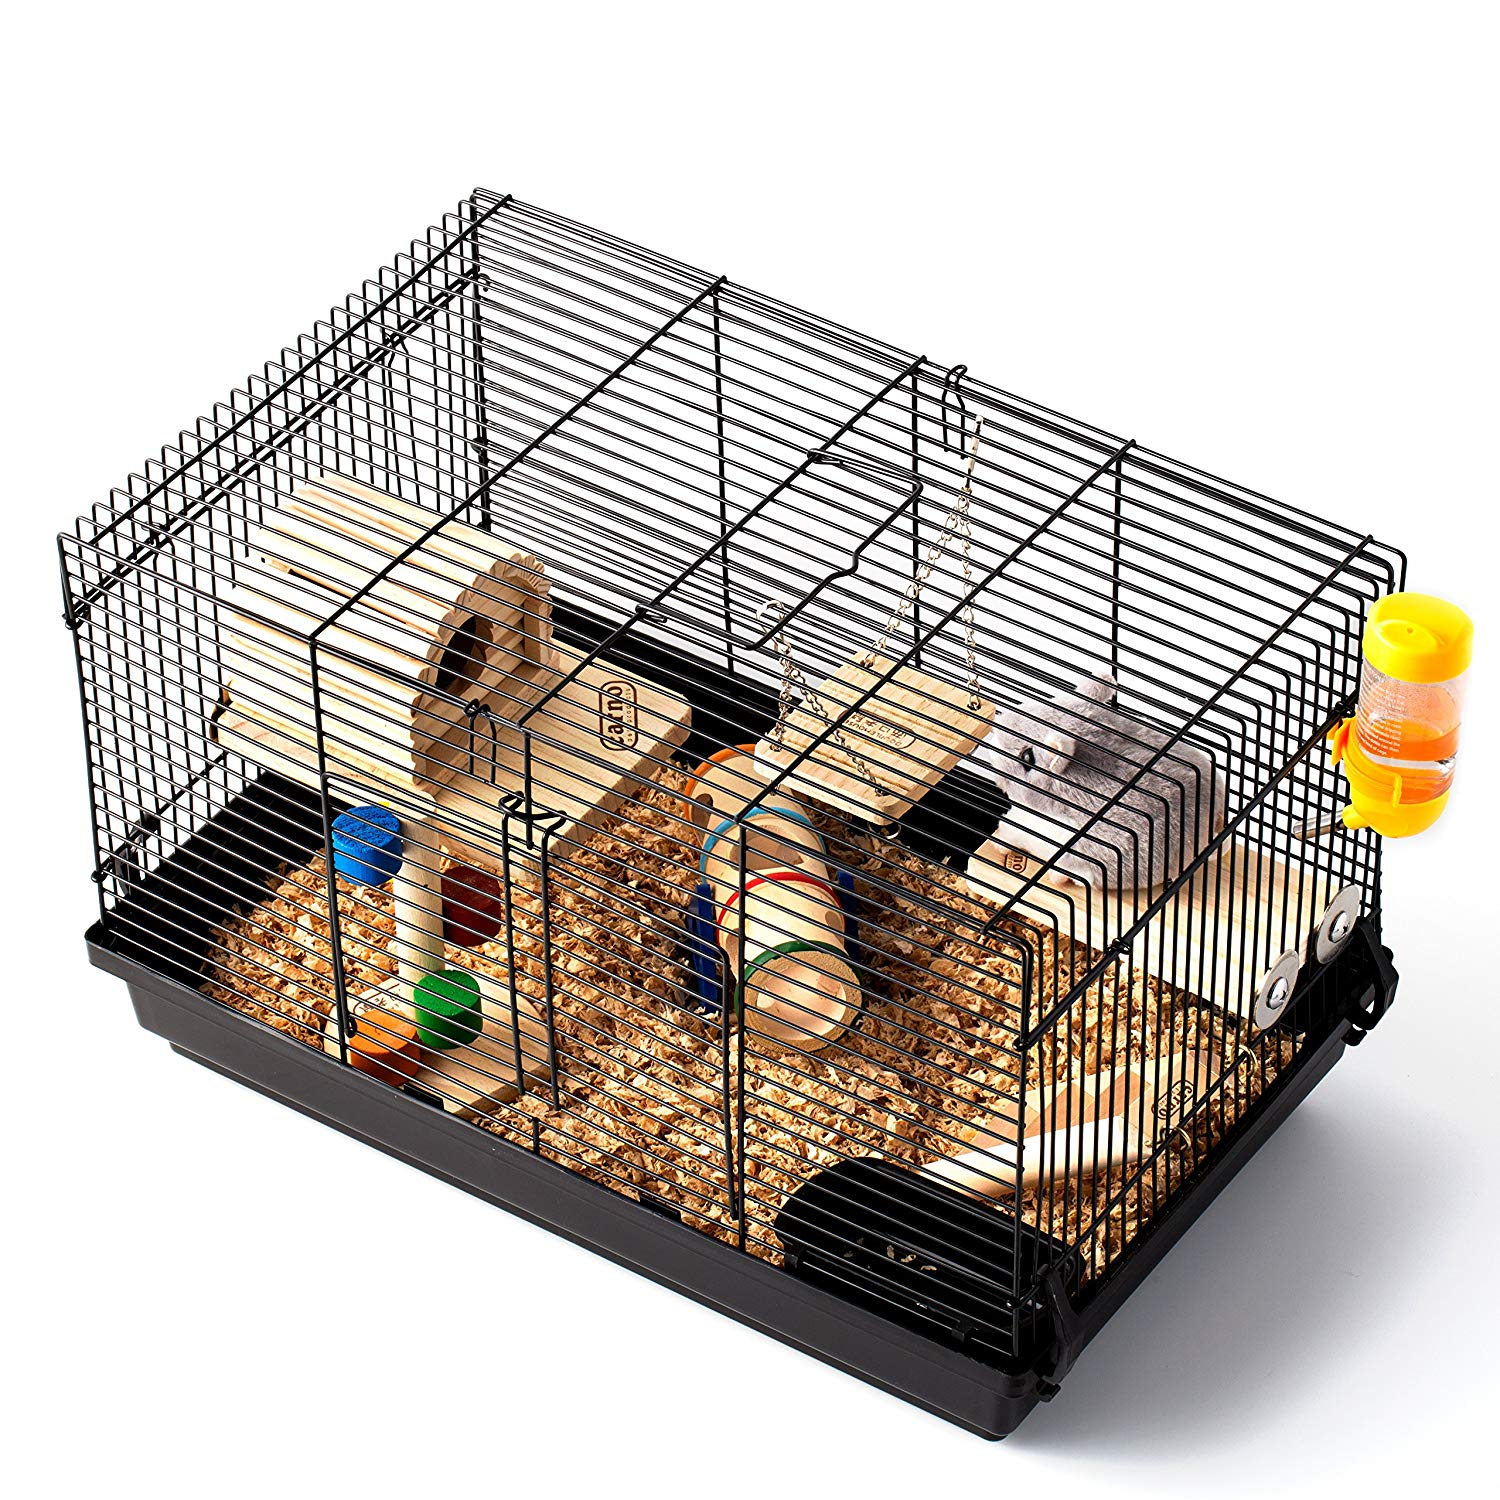 WorldWide Selection Hamster Cage/Hamster Habitat/Small Animal Habitat,Including a Perfect Hamster House and 9 pcs Wooden Toys/Accessories and a Pack of 2.2 lbs 100% Natural Sawdust